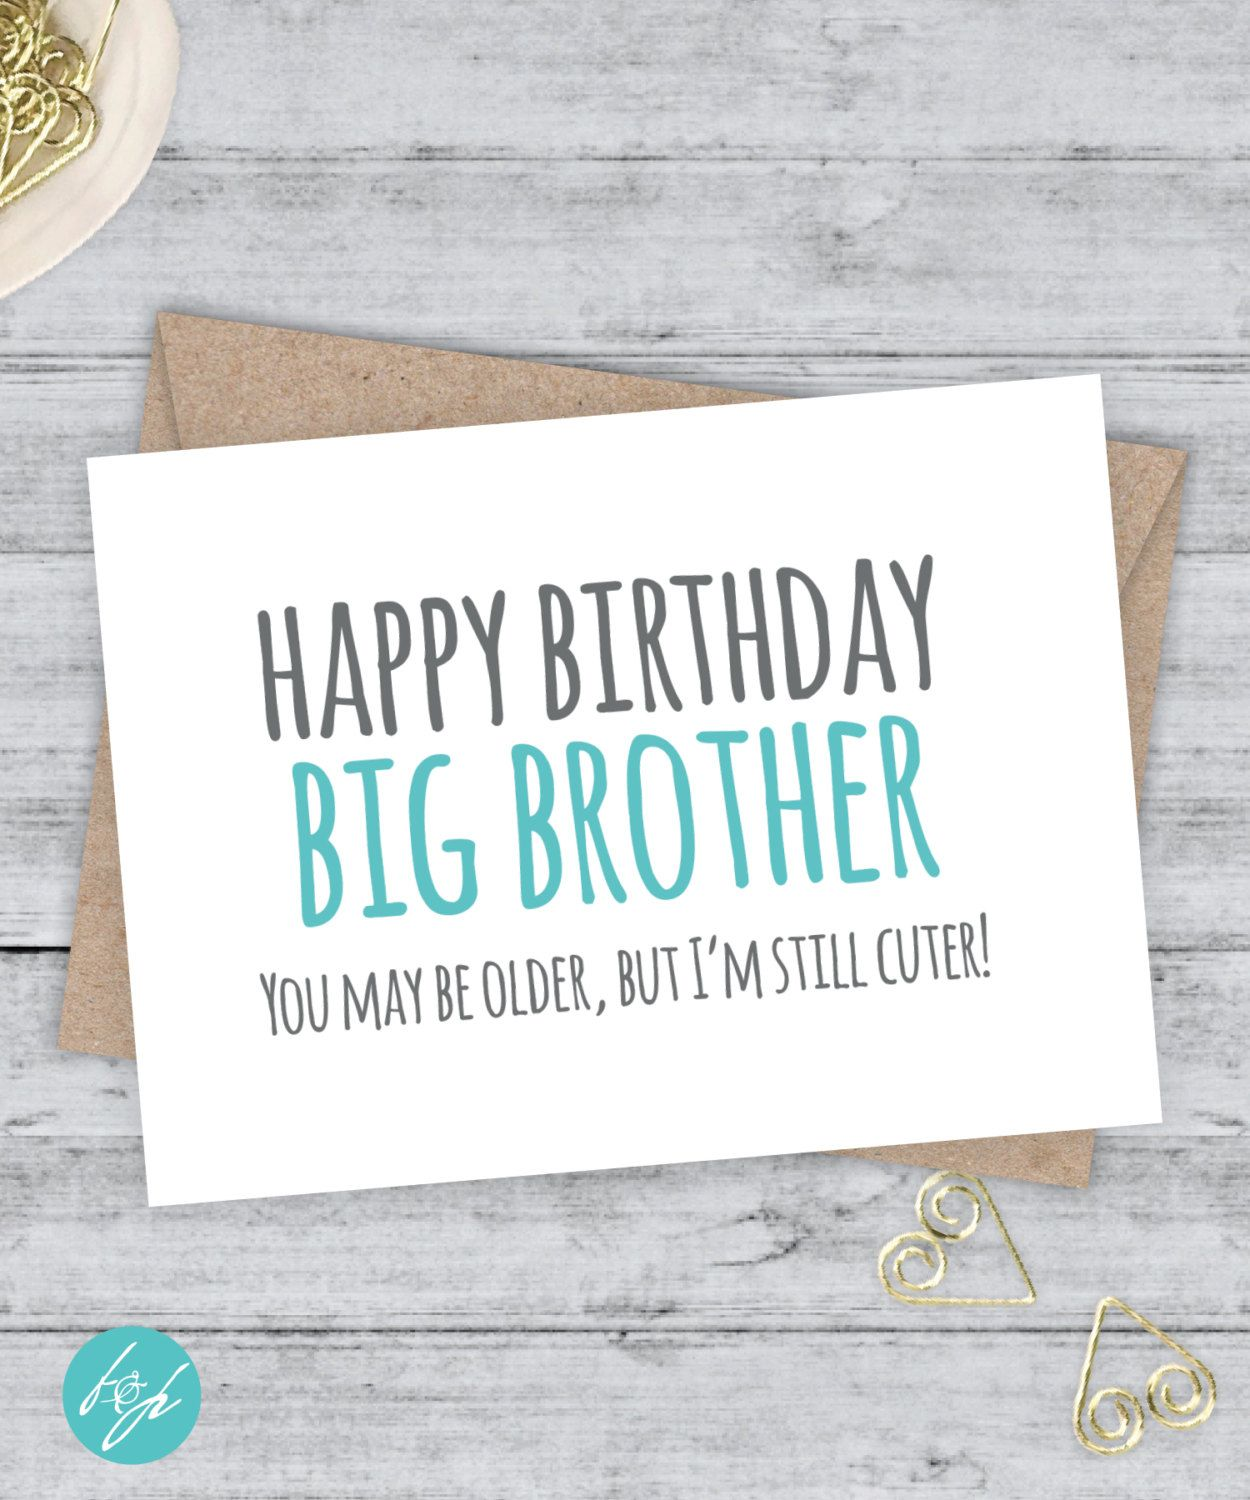 Birthday Quotes For Younger Brother From Sister: Funny Brother Birthday